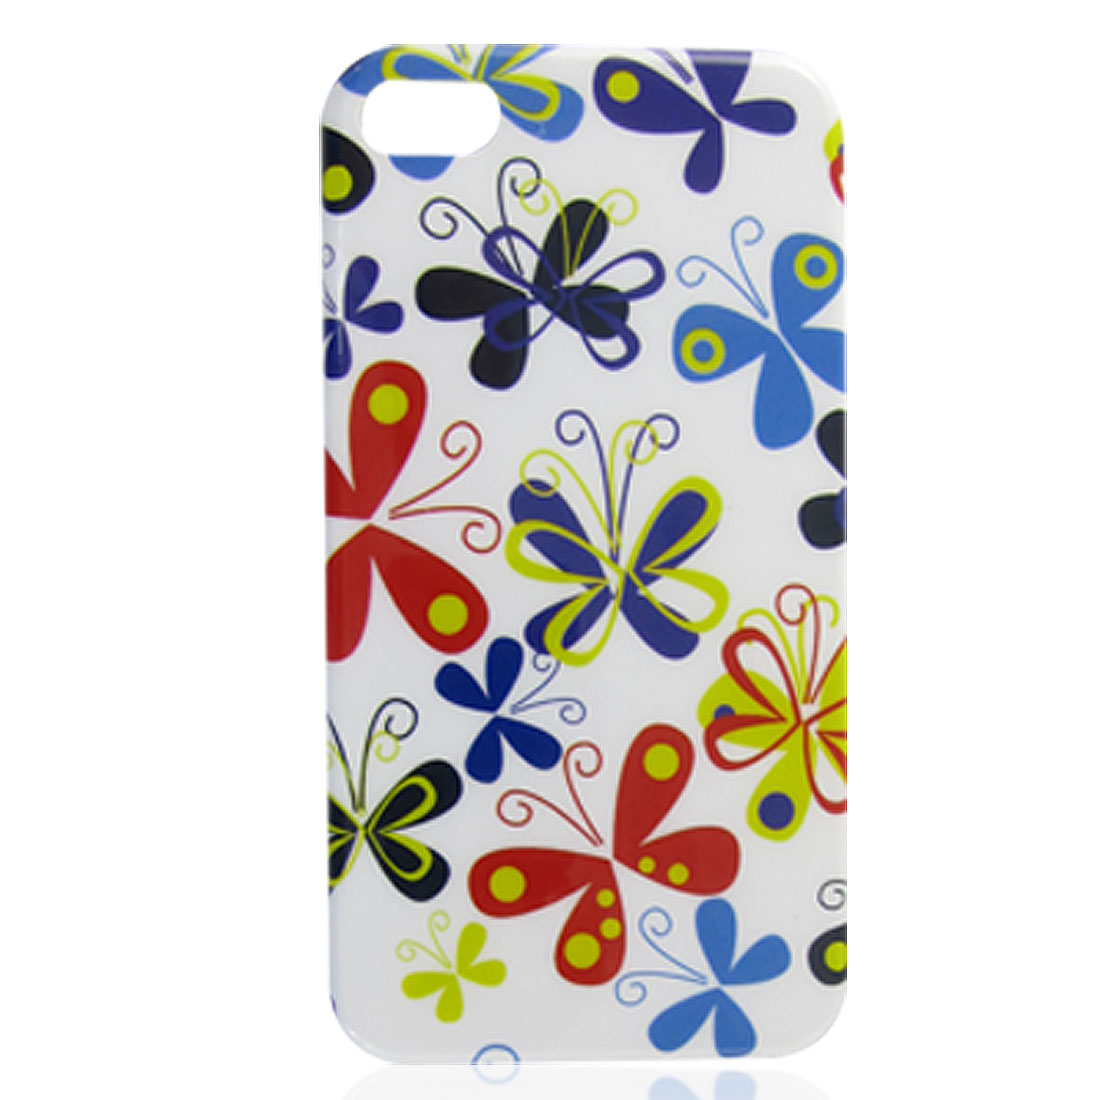 Multicolor Butterfly Print IMD Back Cover Case for iPhone 4 4G 4S